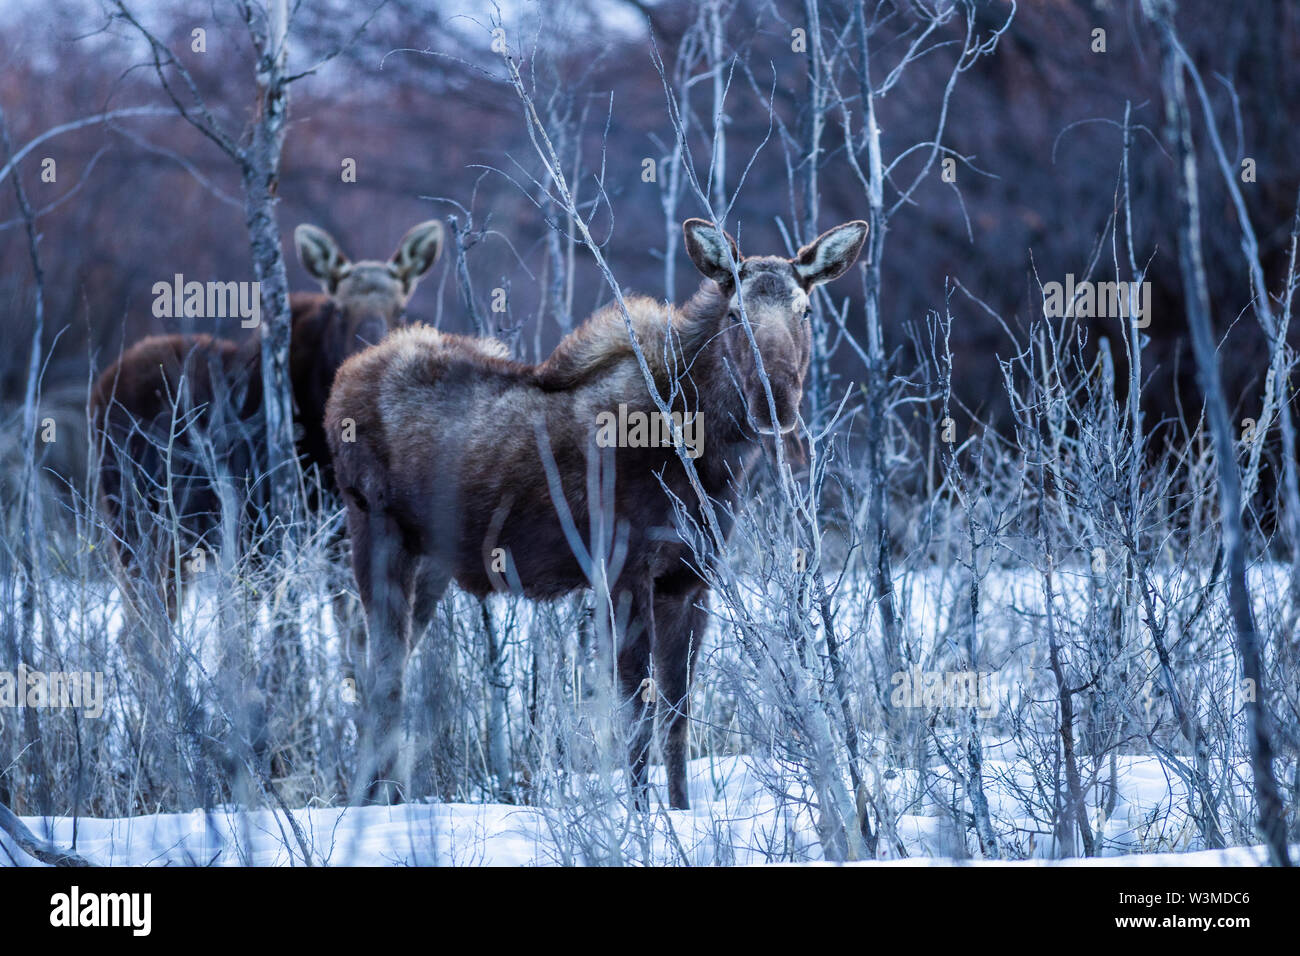 Moose in Picabo, Idaho - Stock Image